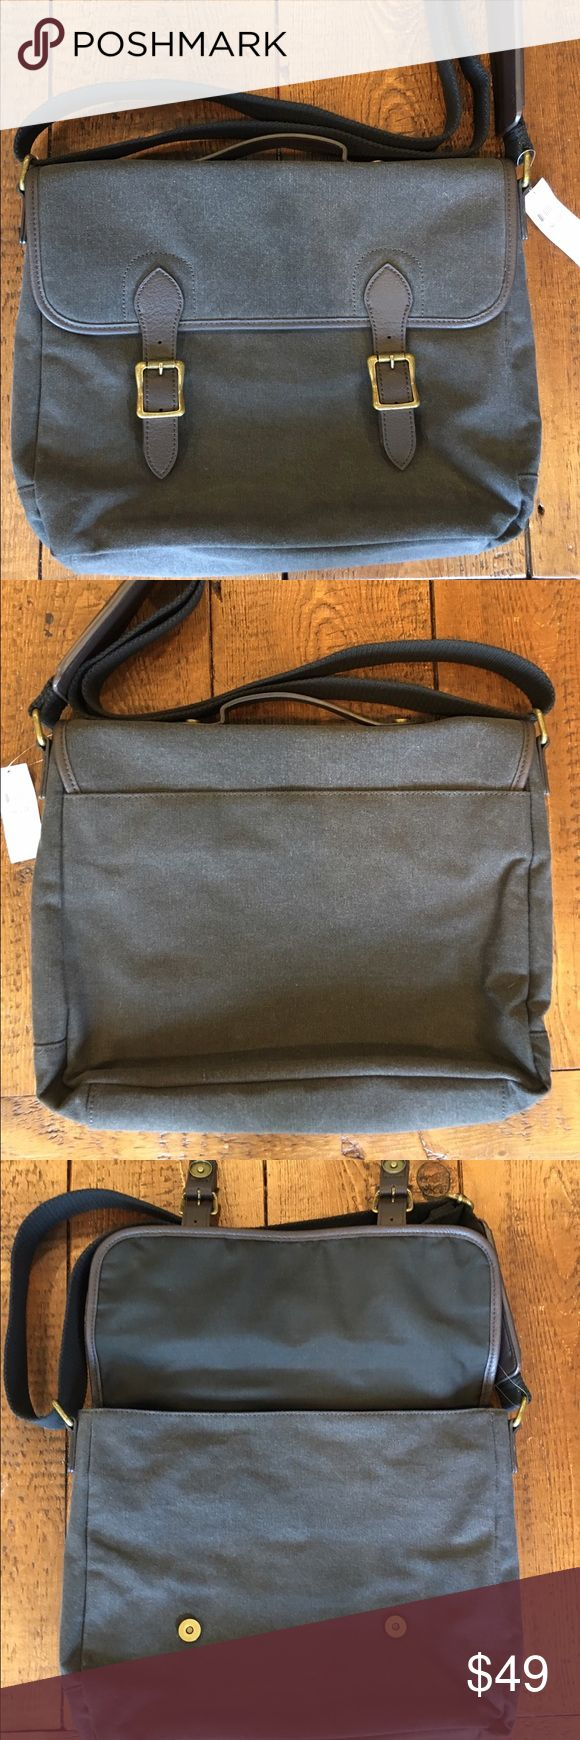 Never used Banana republic messenger bag Brand new 🌟no flaws! Inside one compartment divider, a pocket with a zipper and 2 open pockets too. Approximate dimensions are 13.5in x 11.5in x 3in Banana Republic Bags Messenger Bags